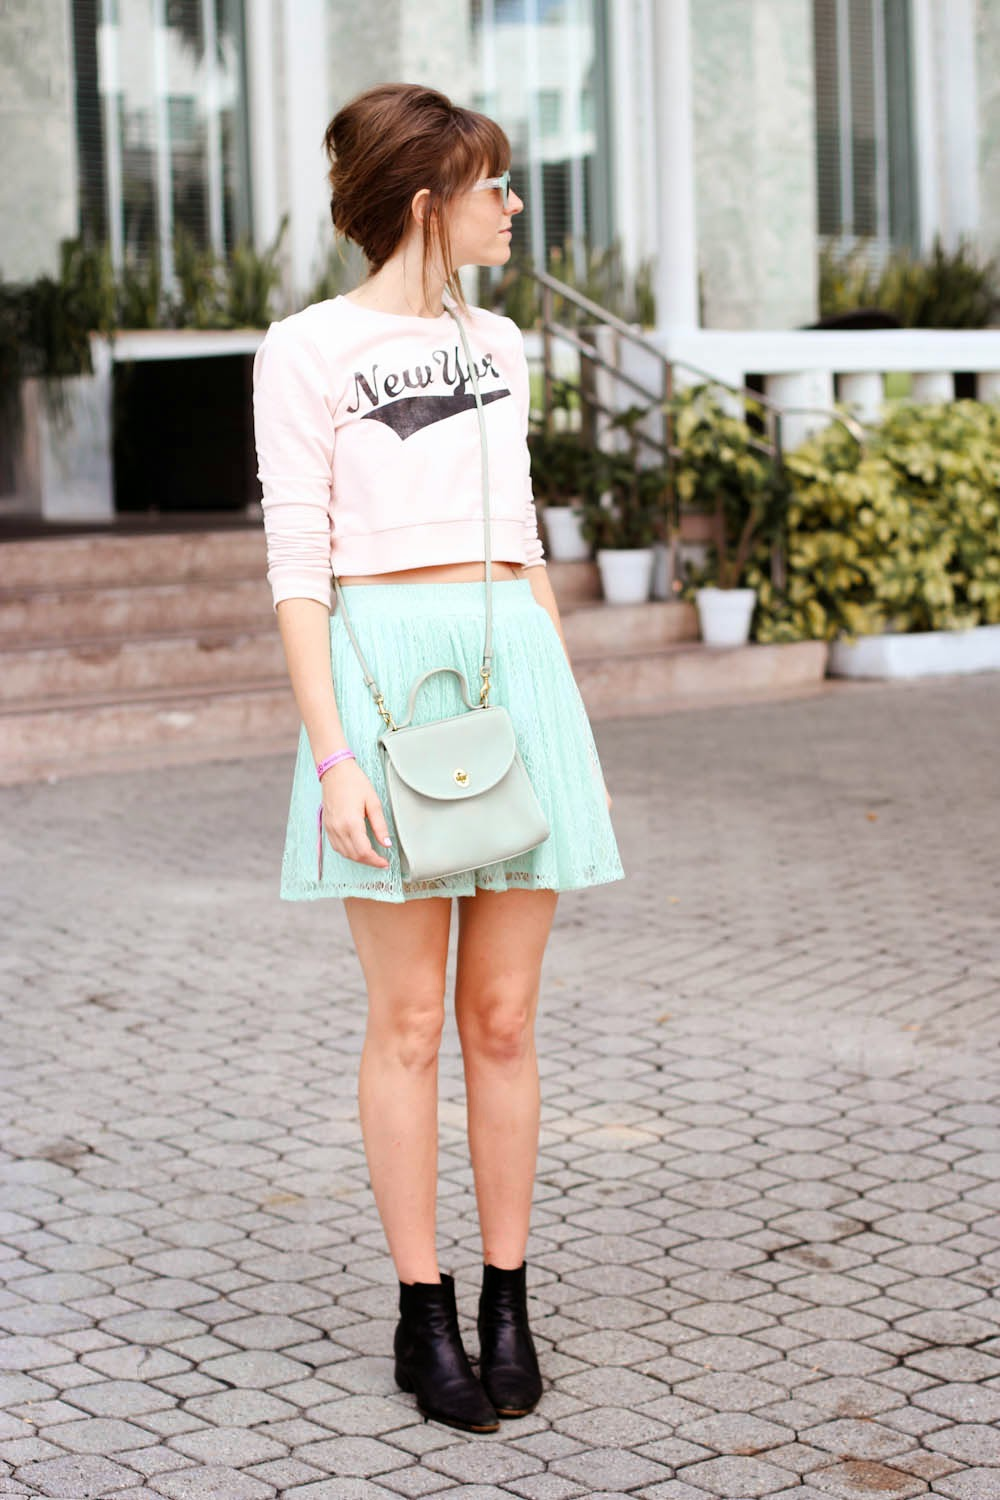 steffy kuncman, forever 21 new york shirt, mint green